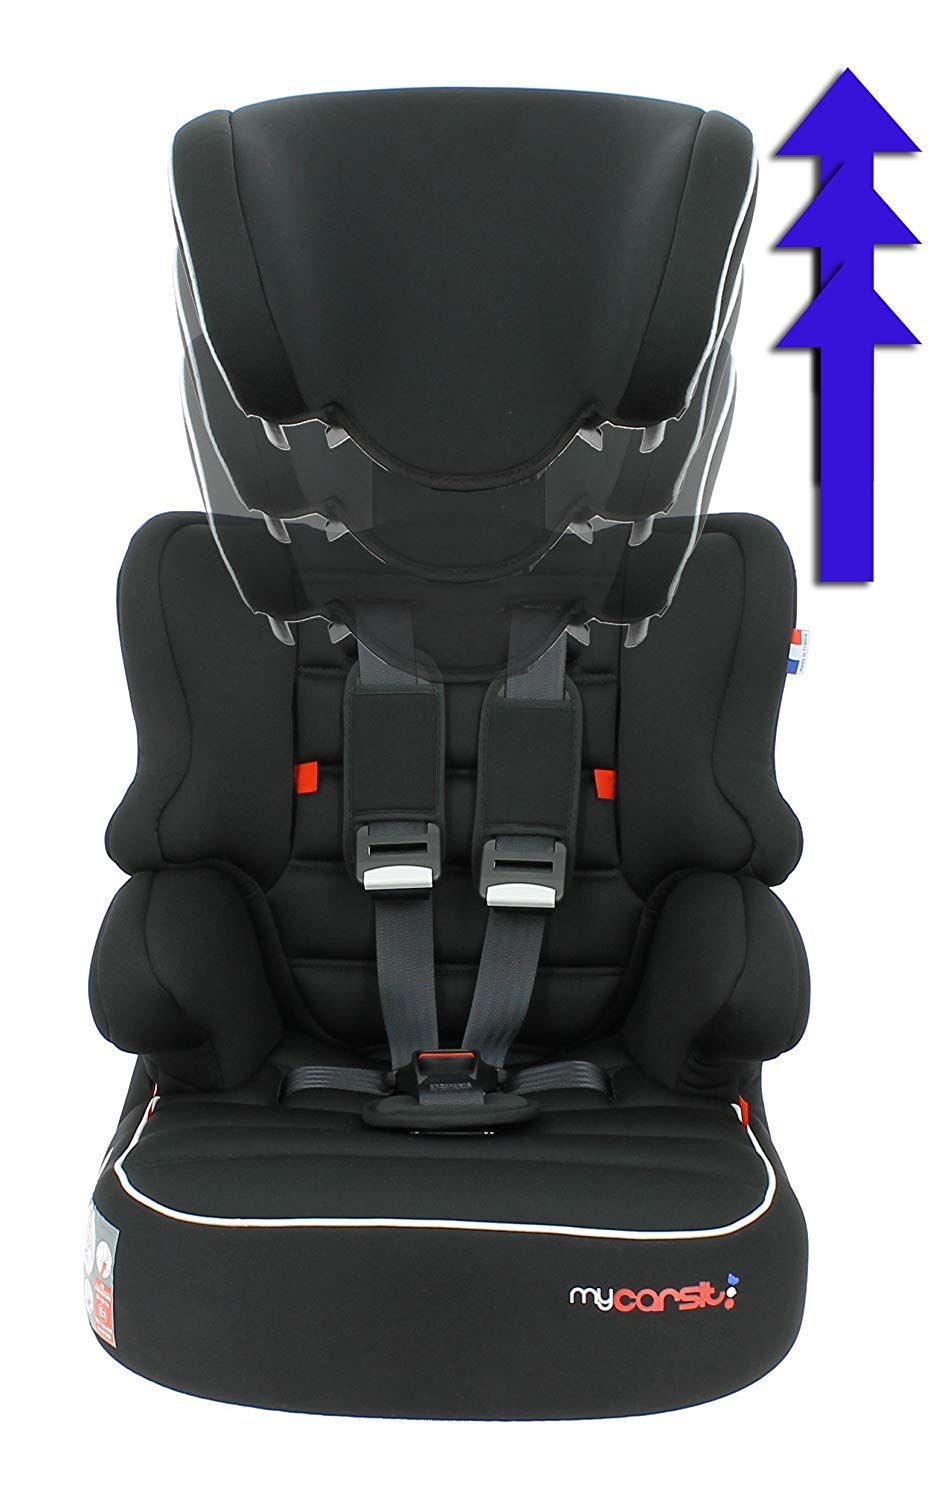 Nania Beline Group 1/2/3 Highback Booster Car Seat, Pink nania High back booster car seat with harness Designed to ensure your little one travels in comfort Padded and adjustable height headrest 3